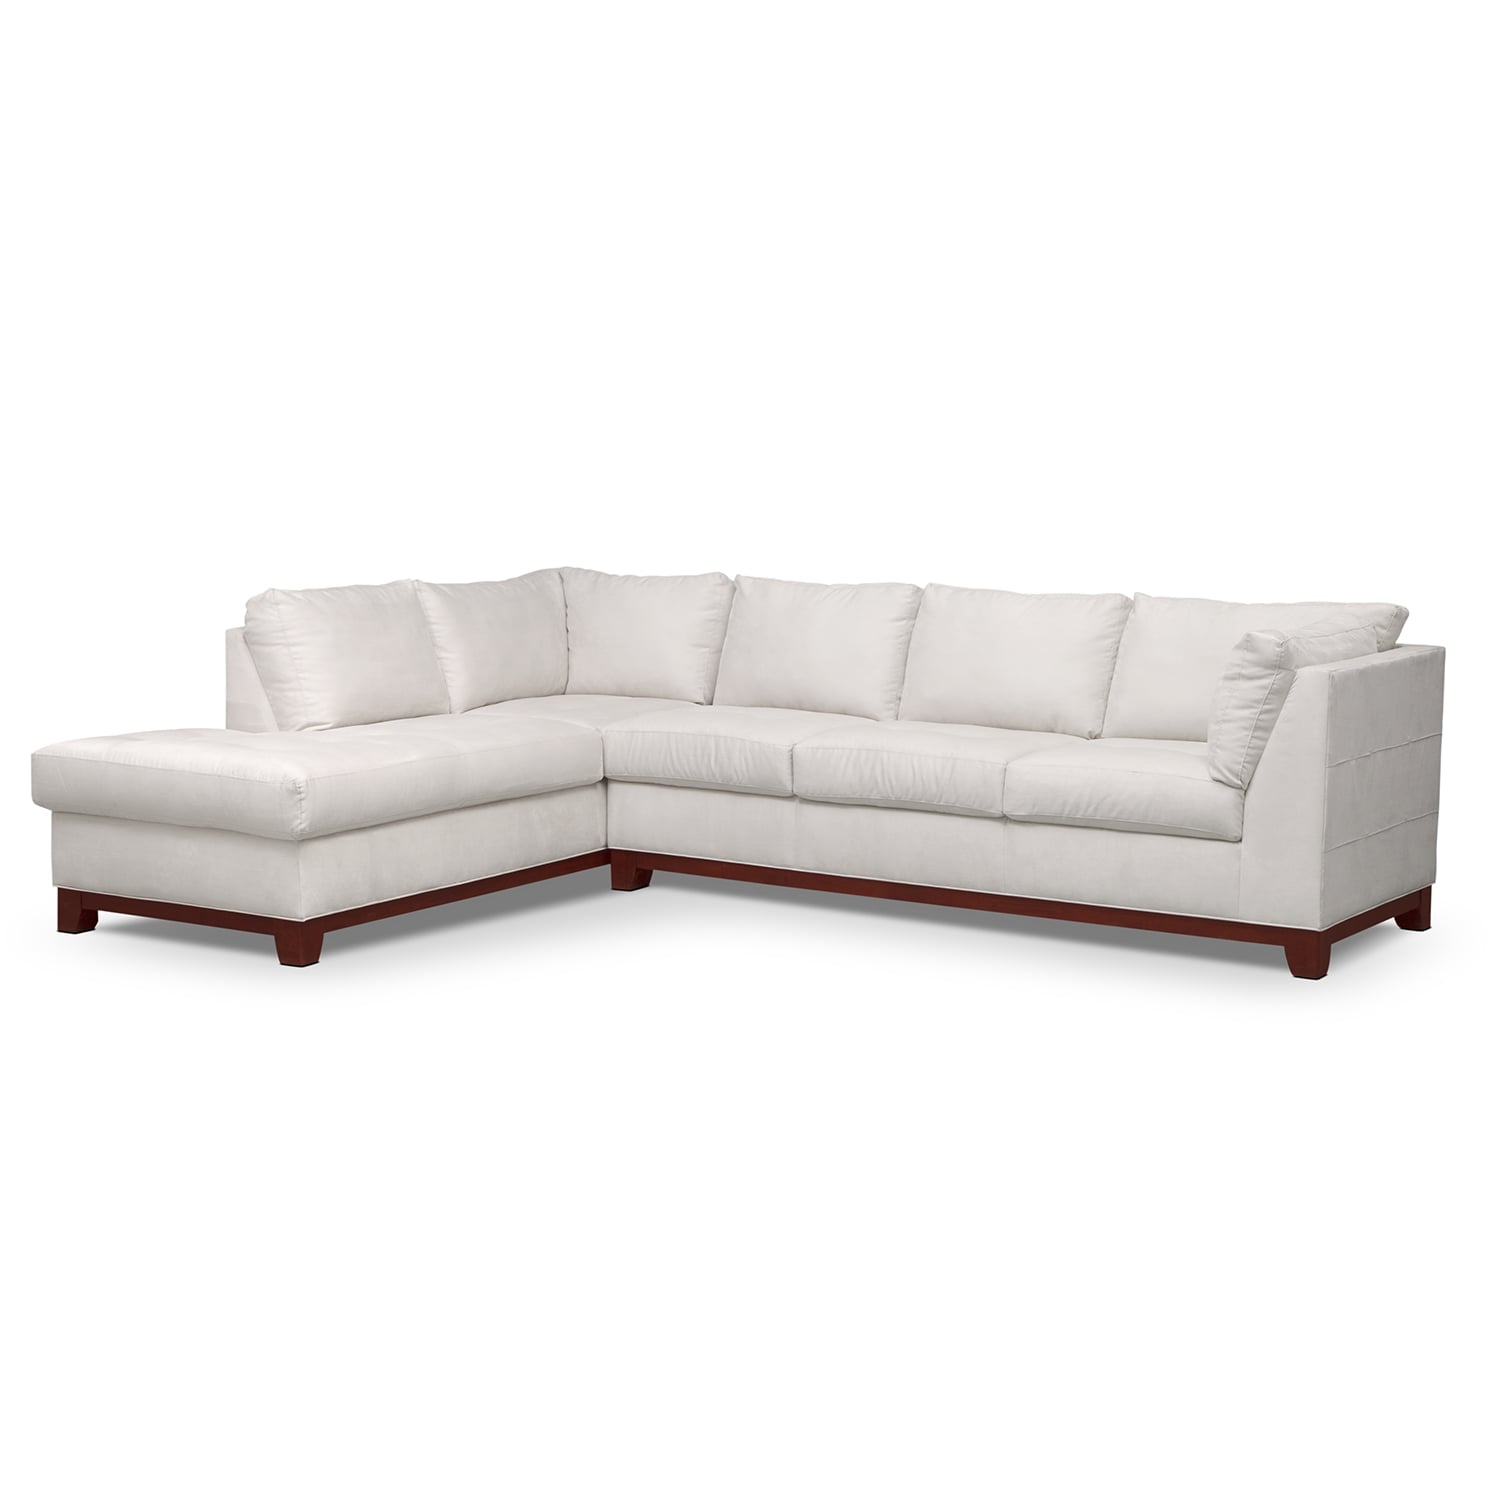 Living Room Furniture - Soho 2-Piece Sectional with Left-Facing Chaise - Cement